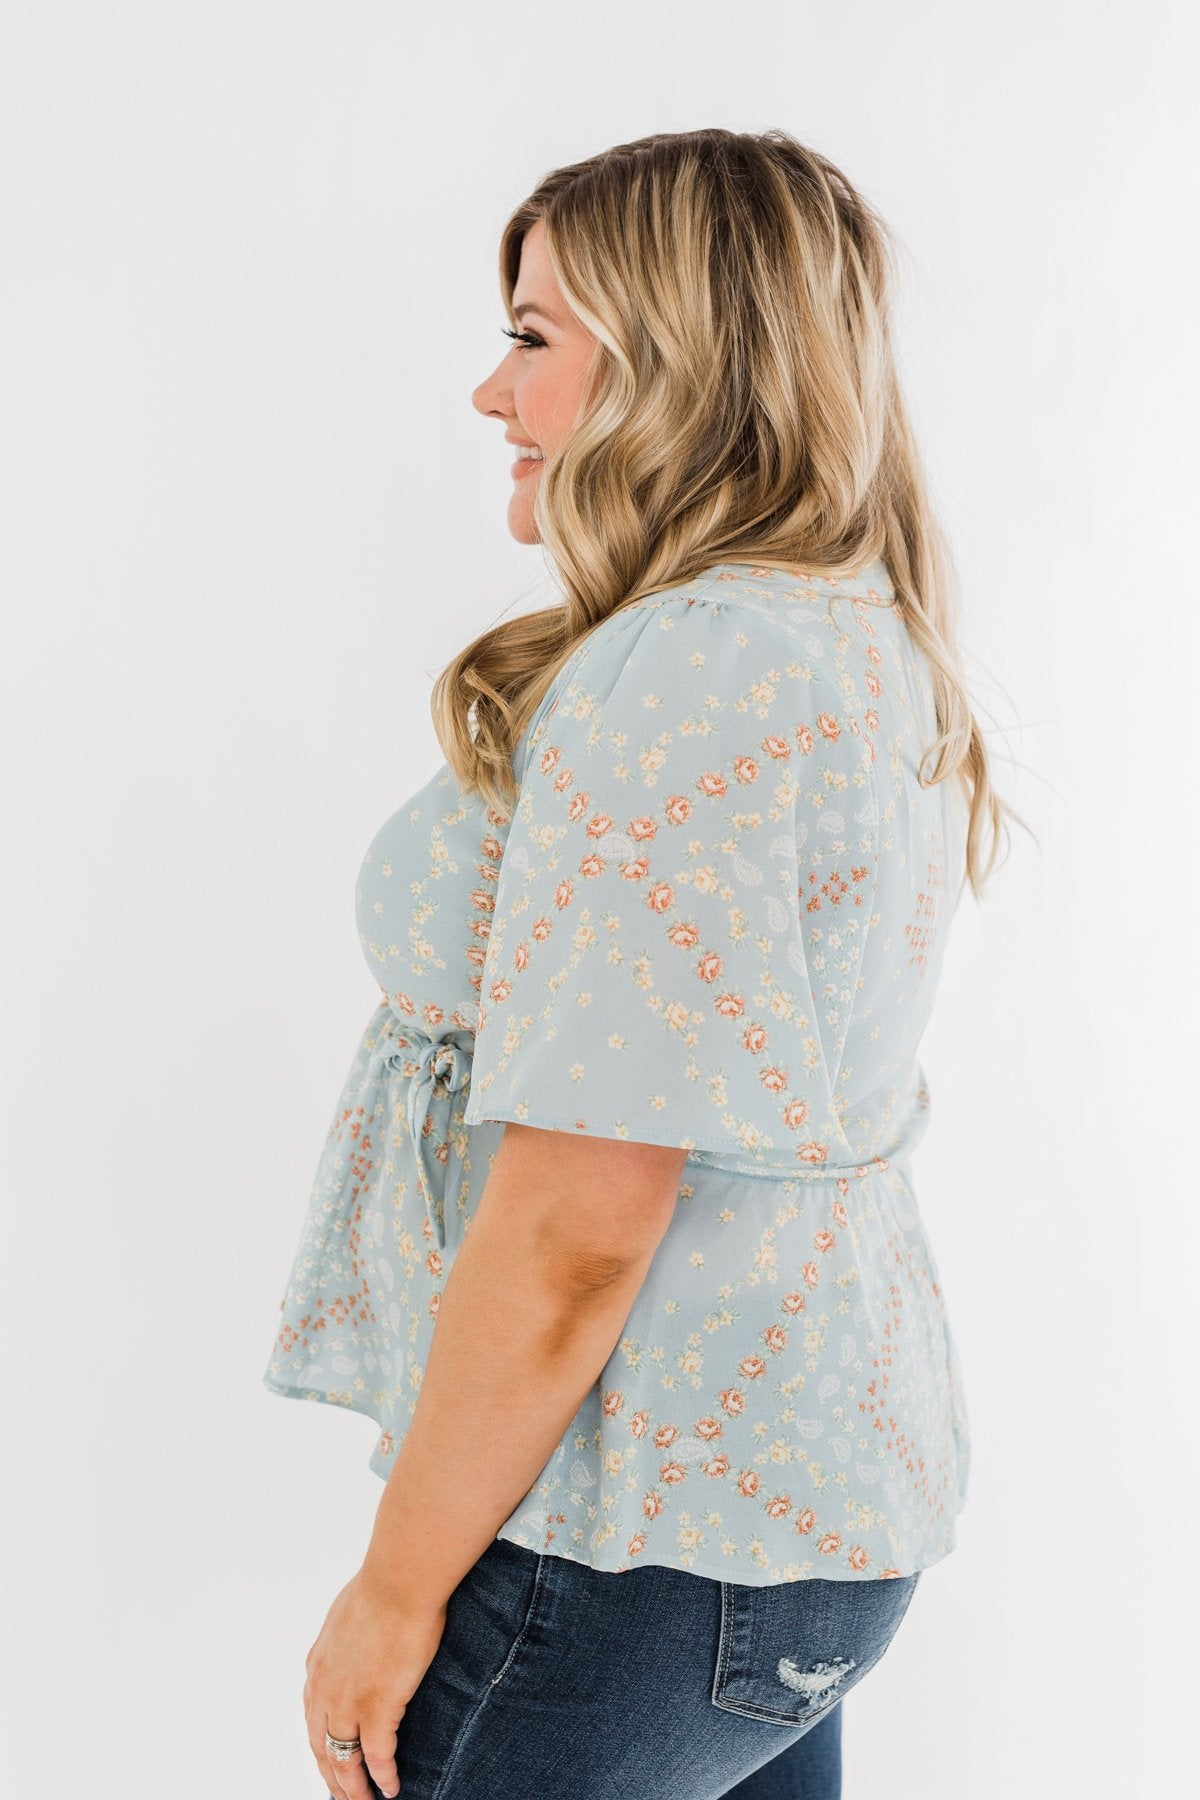 The Things You Say Floral Wrap Top- Light Blue